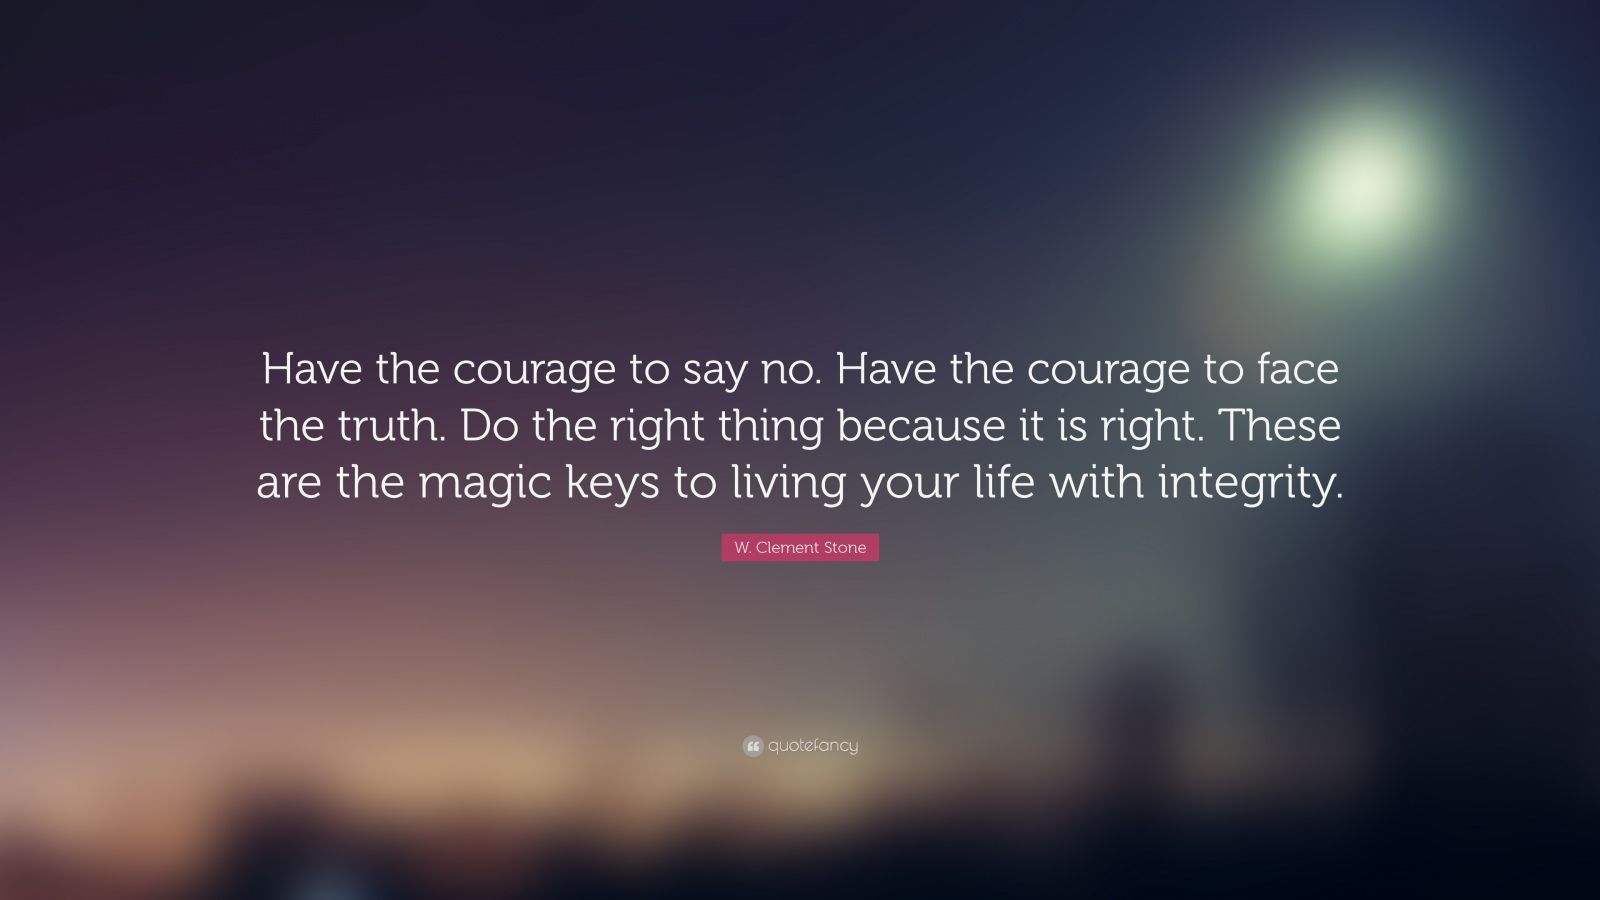 "W. Clement Stone Quote: ""Have the courage to say no. Have the courage to face the truth. Do the right thing because it is right. These are the magic keys to living your life with integrity."""